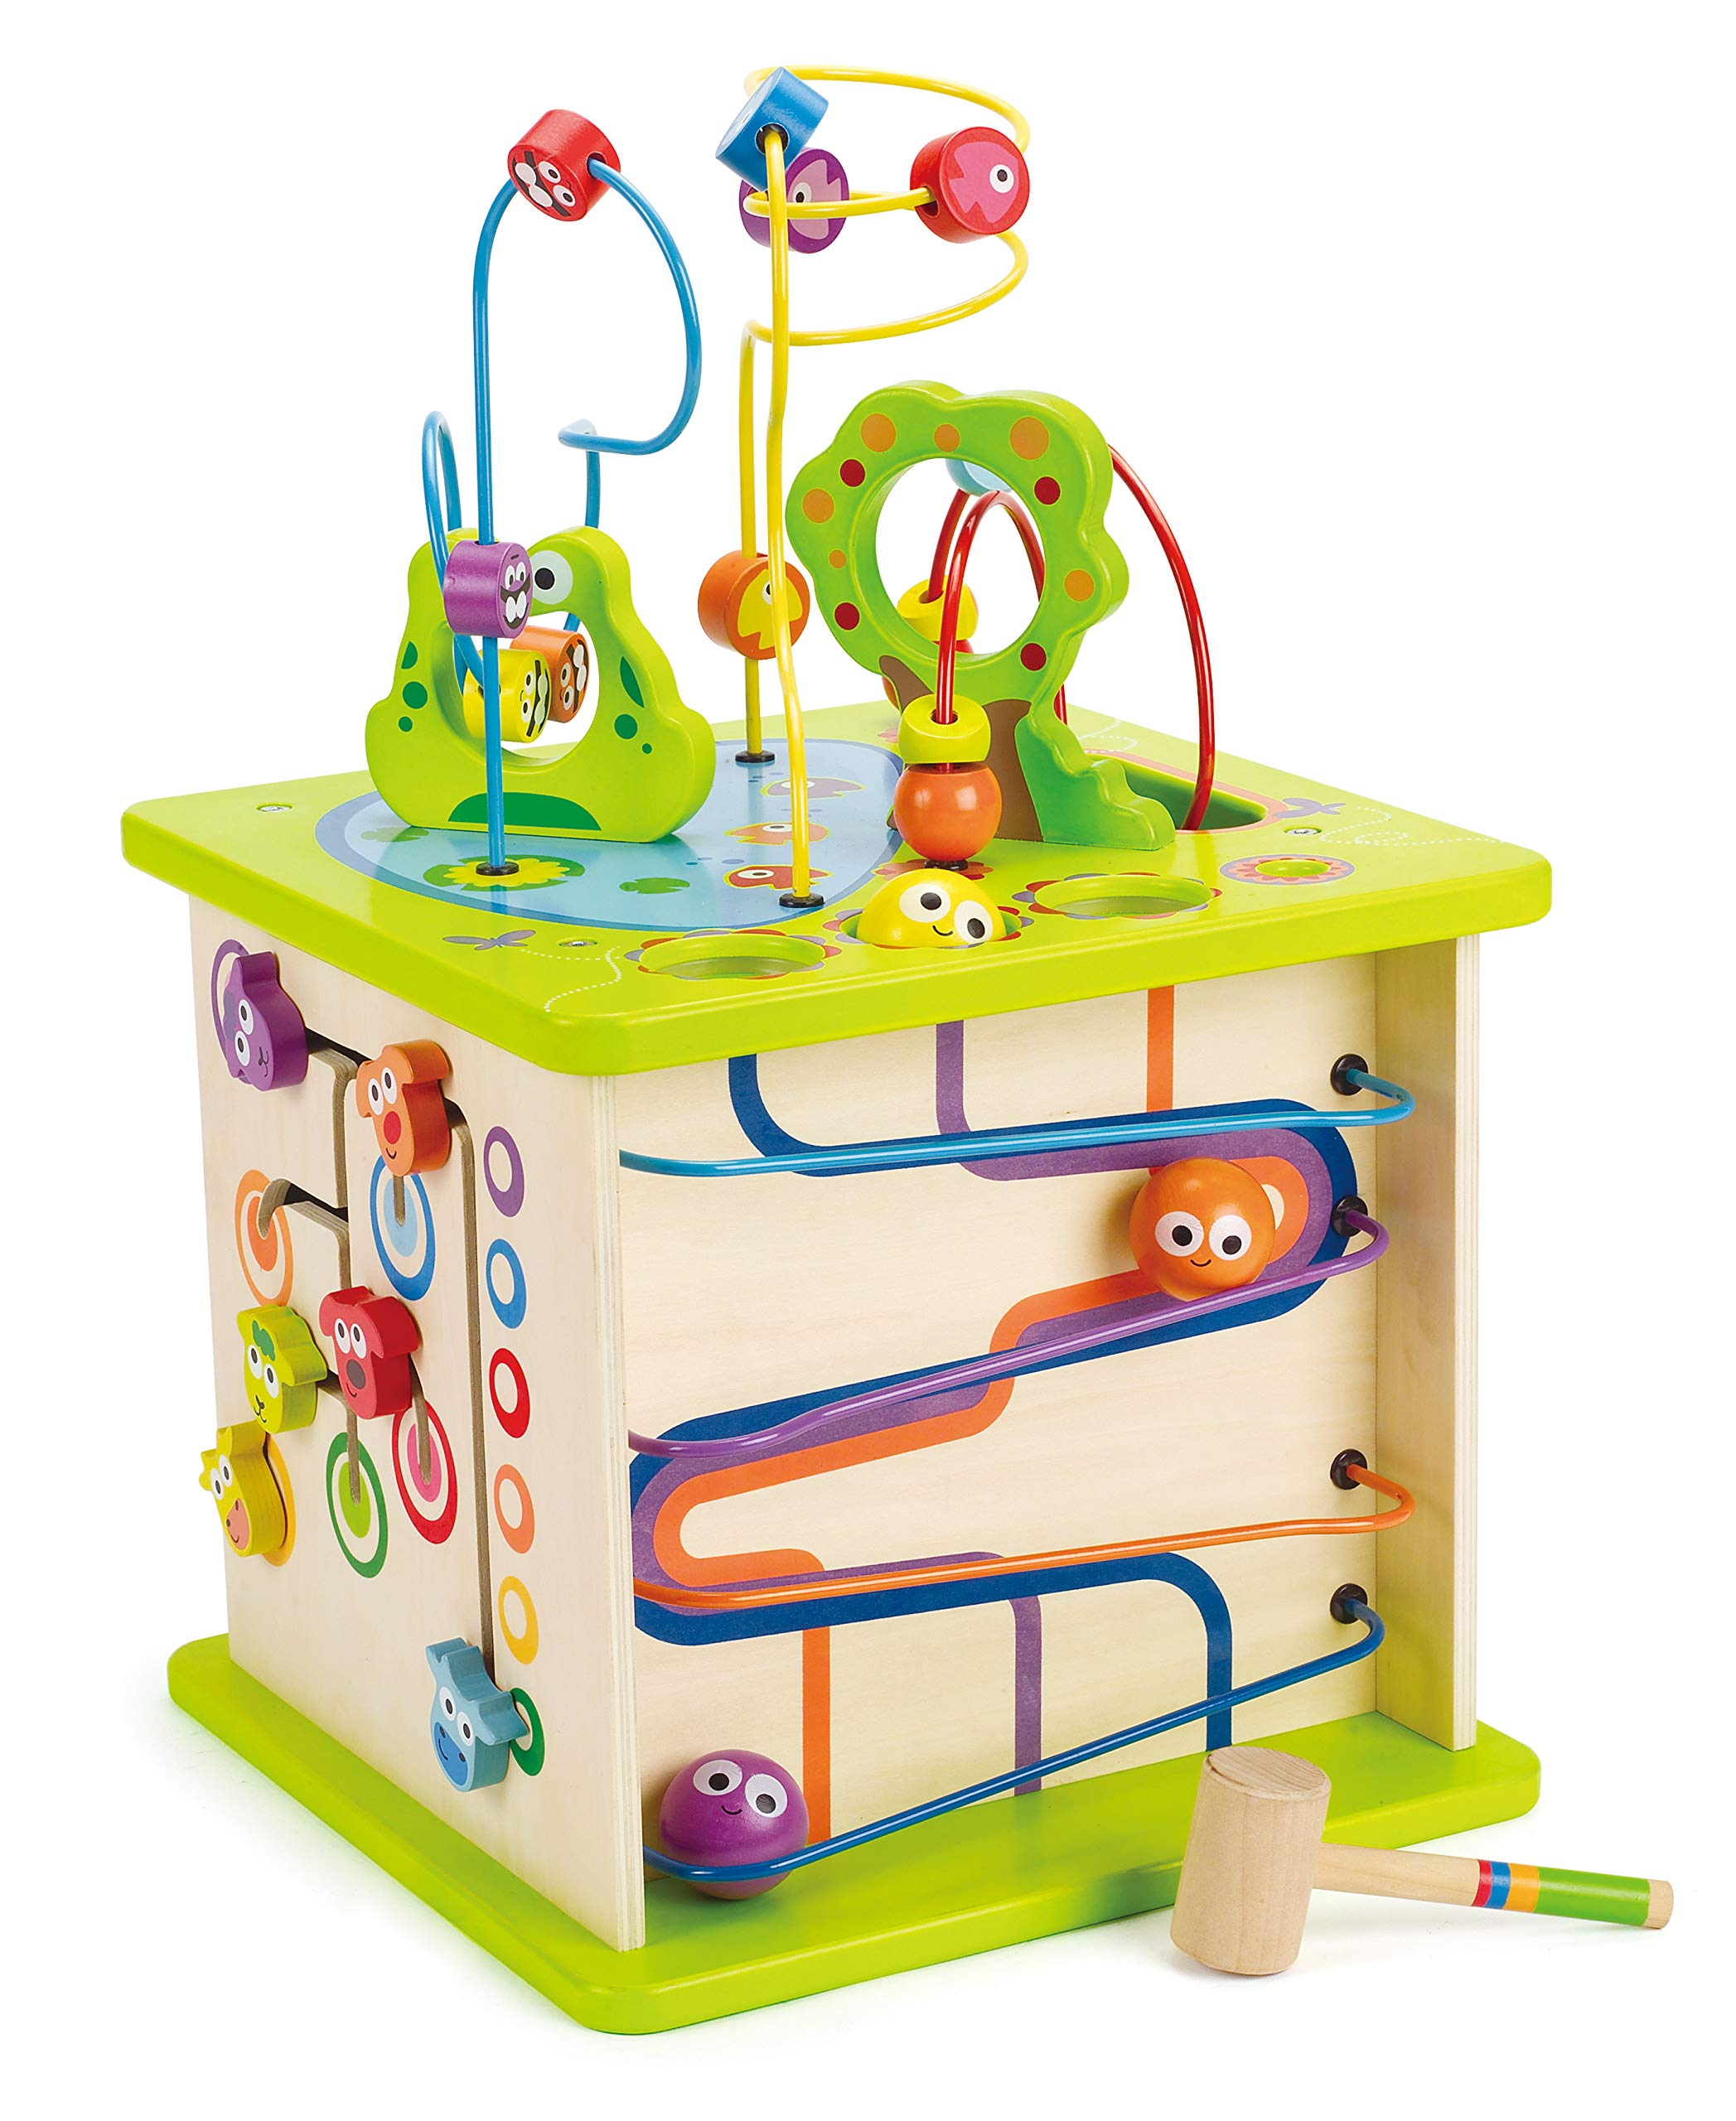 Critters Activity Hape Learning Toddlers